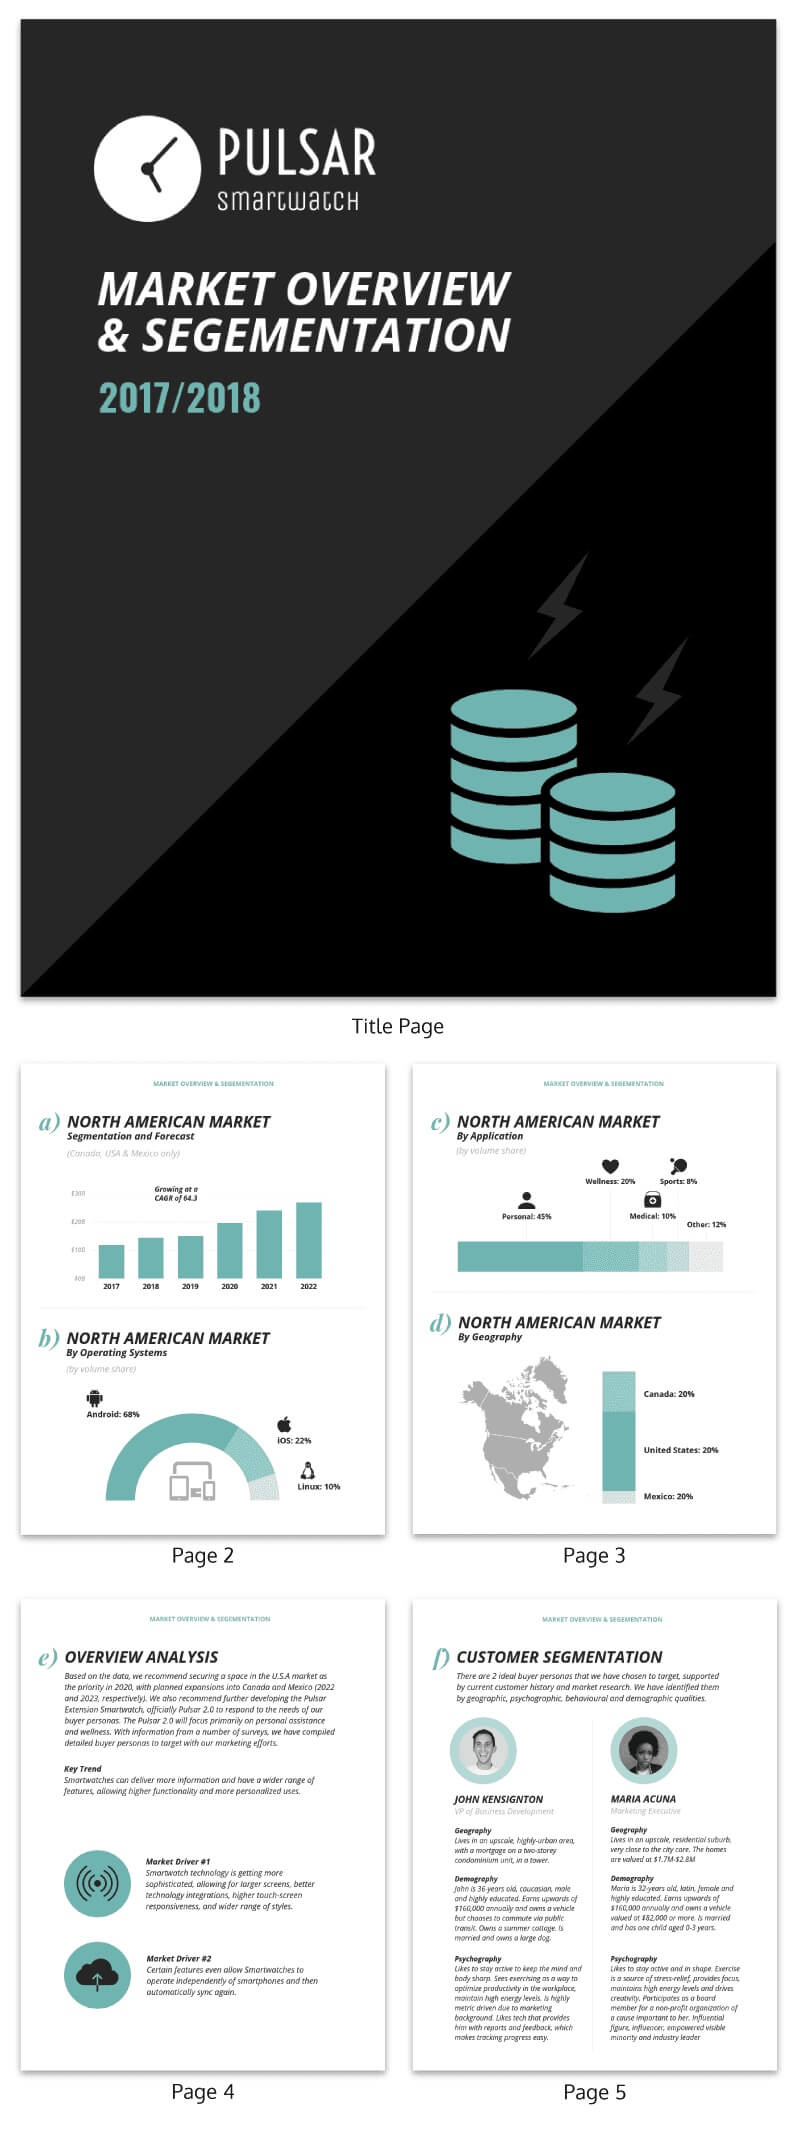 30+ Business Report Templates Every Business Needs - Venngage Throughout Business Analyst Report Template